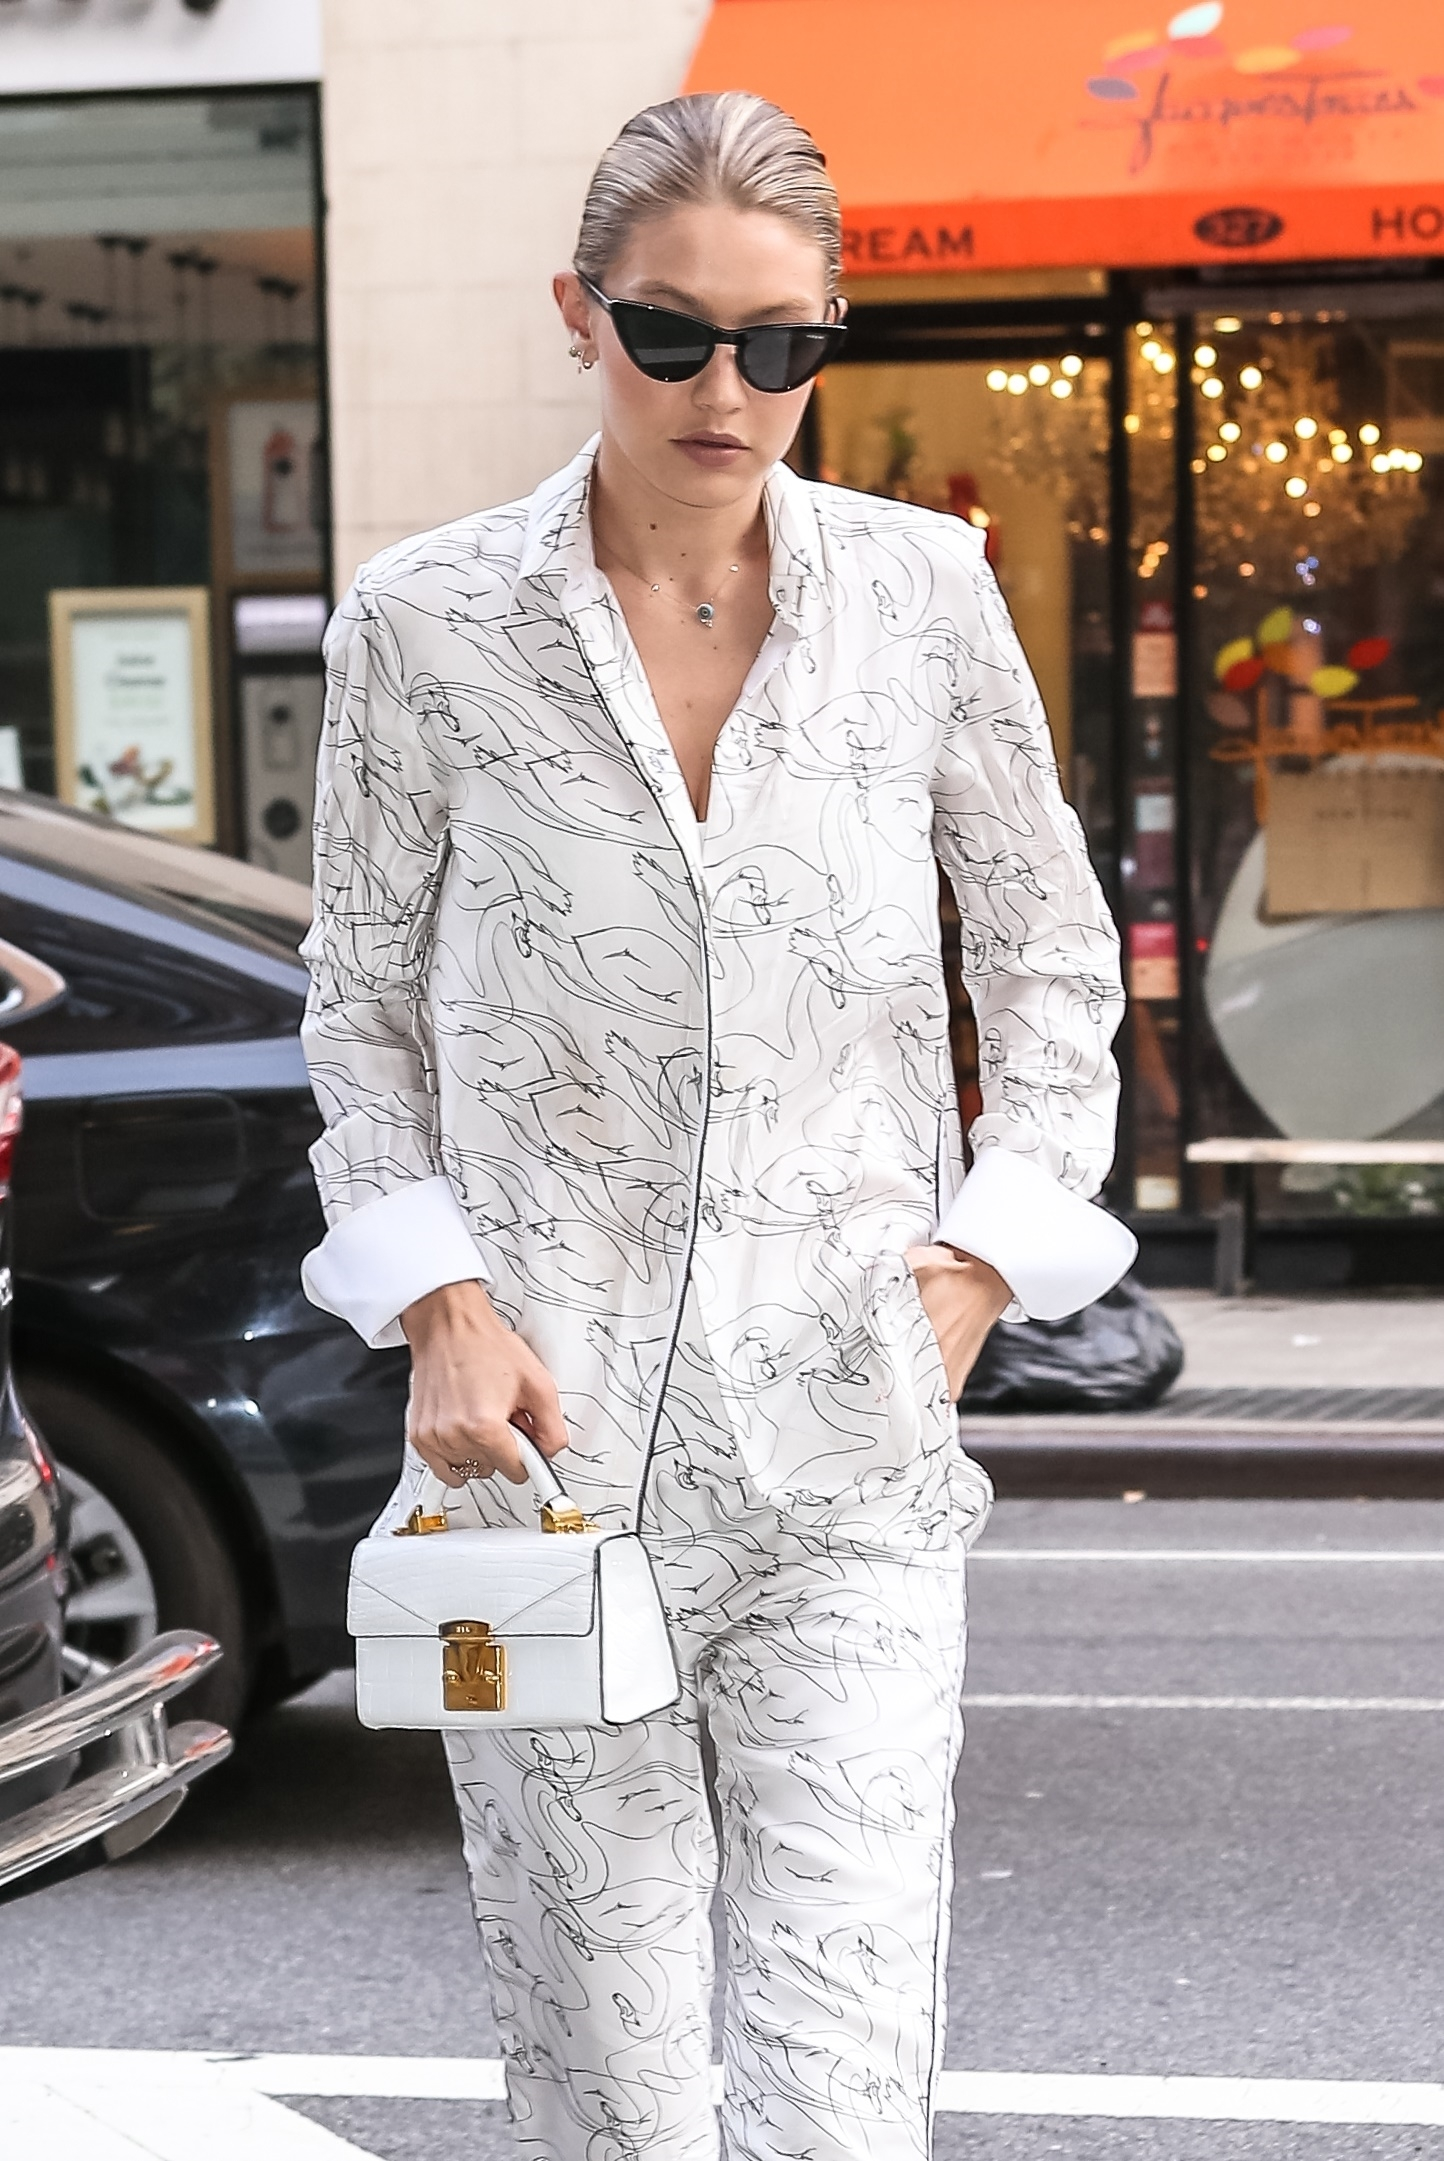 NY, NY  - Gigi Hadid steps out for a dinner with her family. Gigi stands out in an all white ensemble as she shows off her bright red Louis Vuitton bag.  Pictured: Gigi Hadid  BACKGRID USA 17 JULY 2017   USA: +1 310 798 9111 / usasales@backgrid.com  UK: +44 208 344 2007 / uksales@backgrid.com  *UK Clients - Pictures Containing Children Please Pixelate Face Prior To Publication*, Image: 342235860, License: Rights-managed, Restrictions: , Model Release: no, Credit line: Profimedia, AKM-GSI